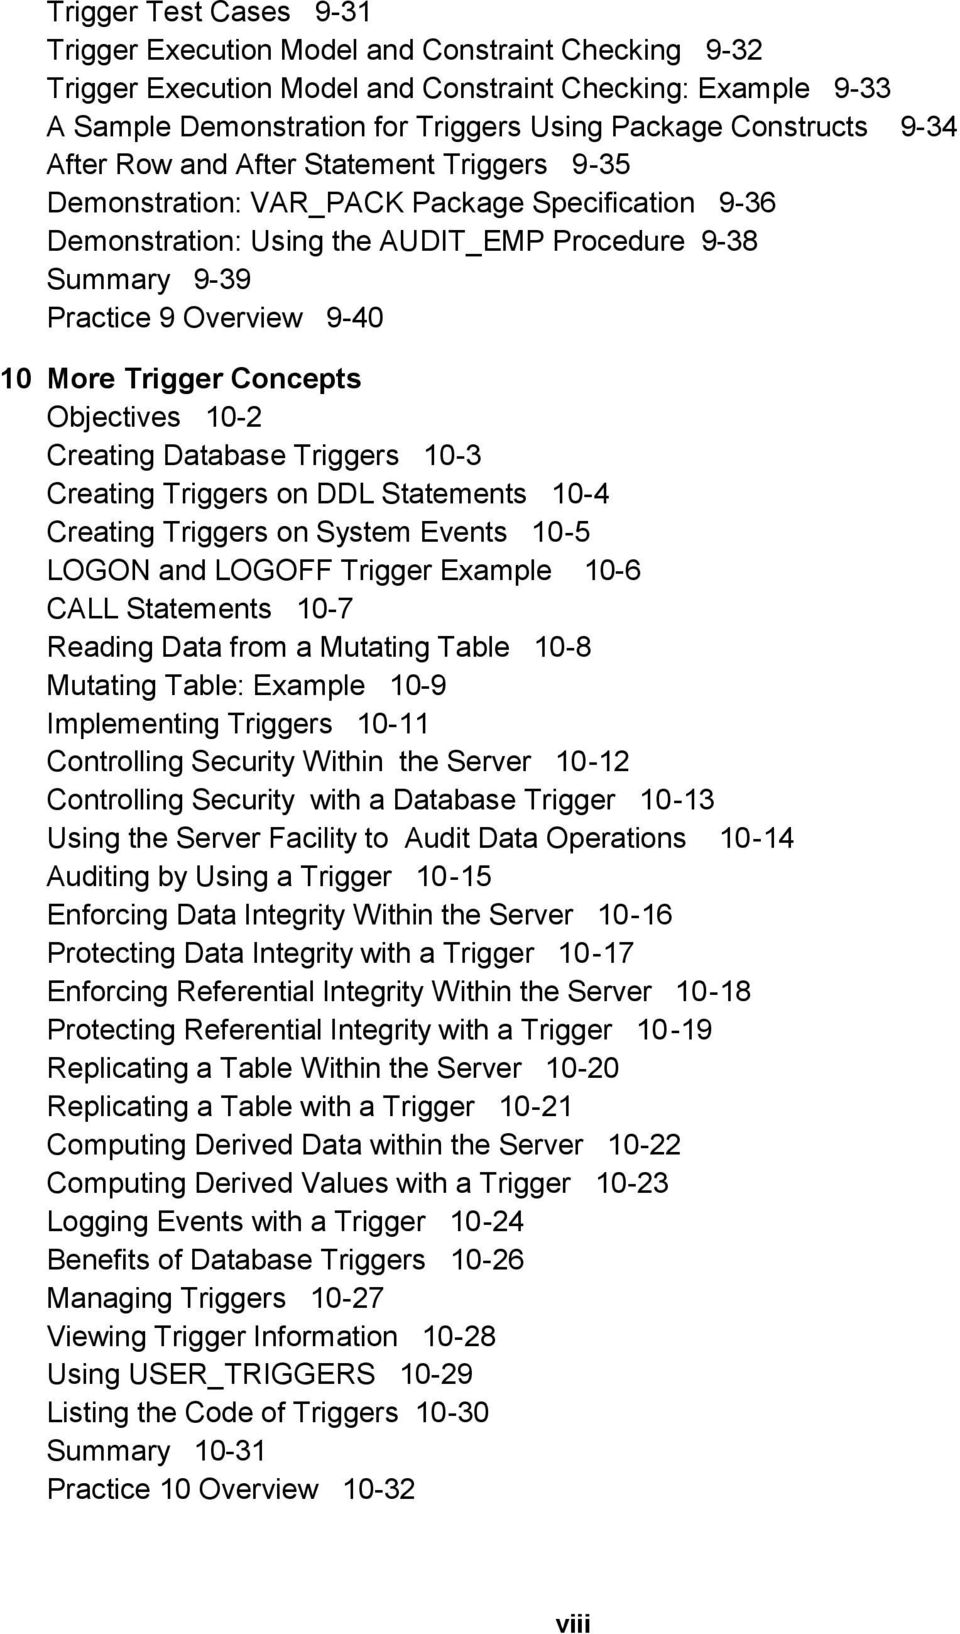 Trigger Concepts Objectives 10-2 Creating Database Triggers 10-3 Creating Triggers on DDL Statements 10-4 Creating Triggers on System Events 10-5 LOGON and LOGOFF Trigger Example 10-6 CALL Statements